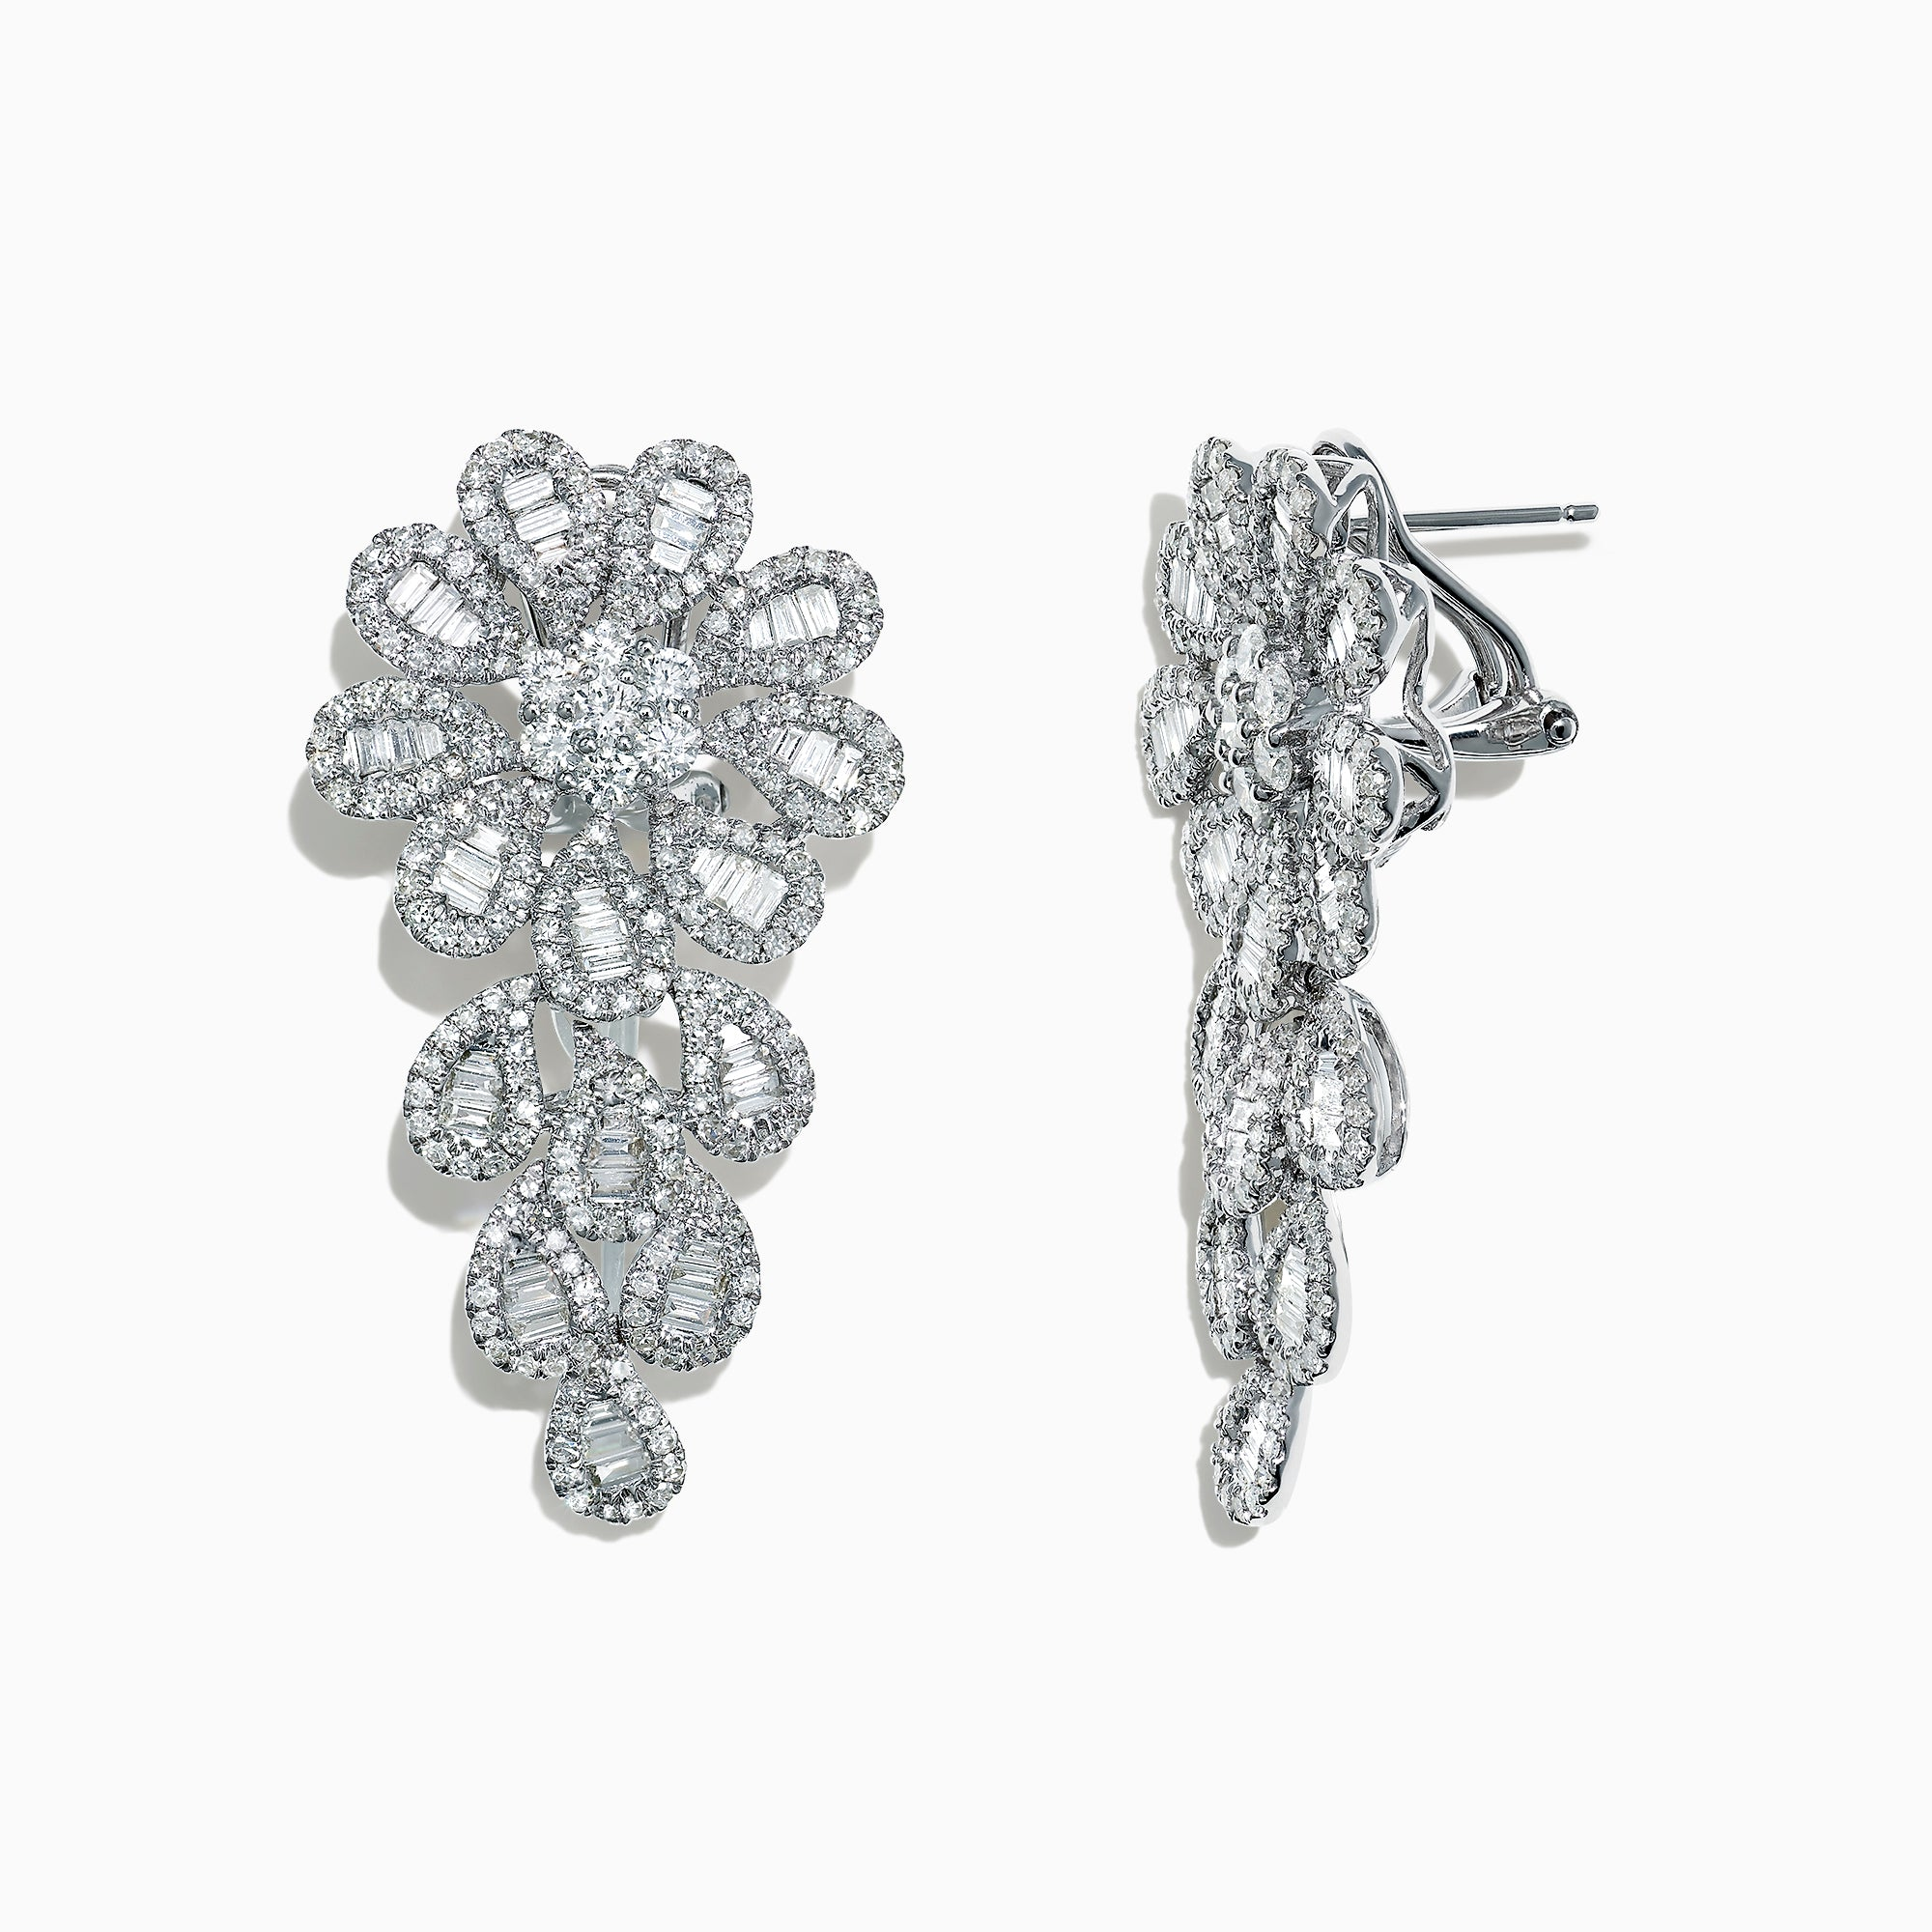 Effy Classique 14K White Gold Diamond Floral Earrings, 2.83 TCW